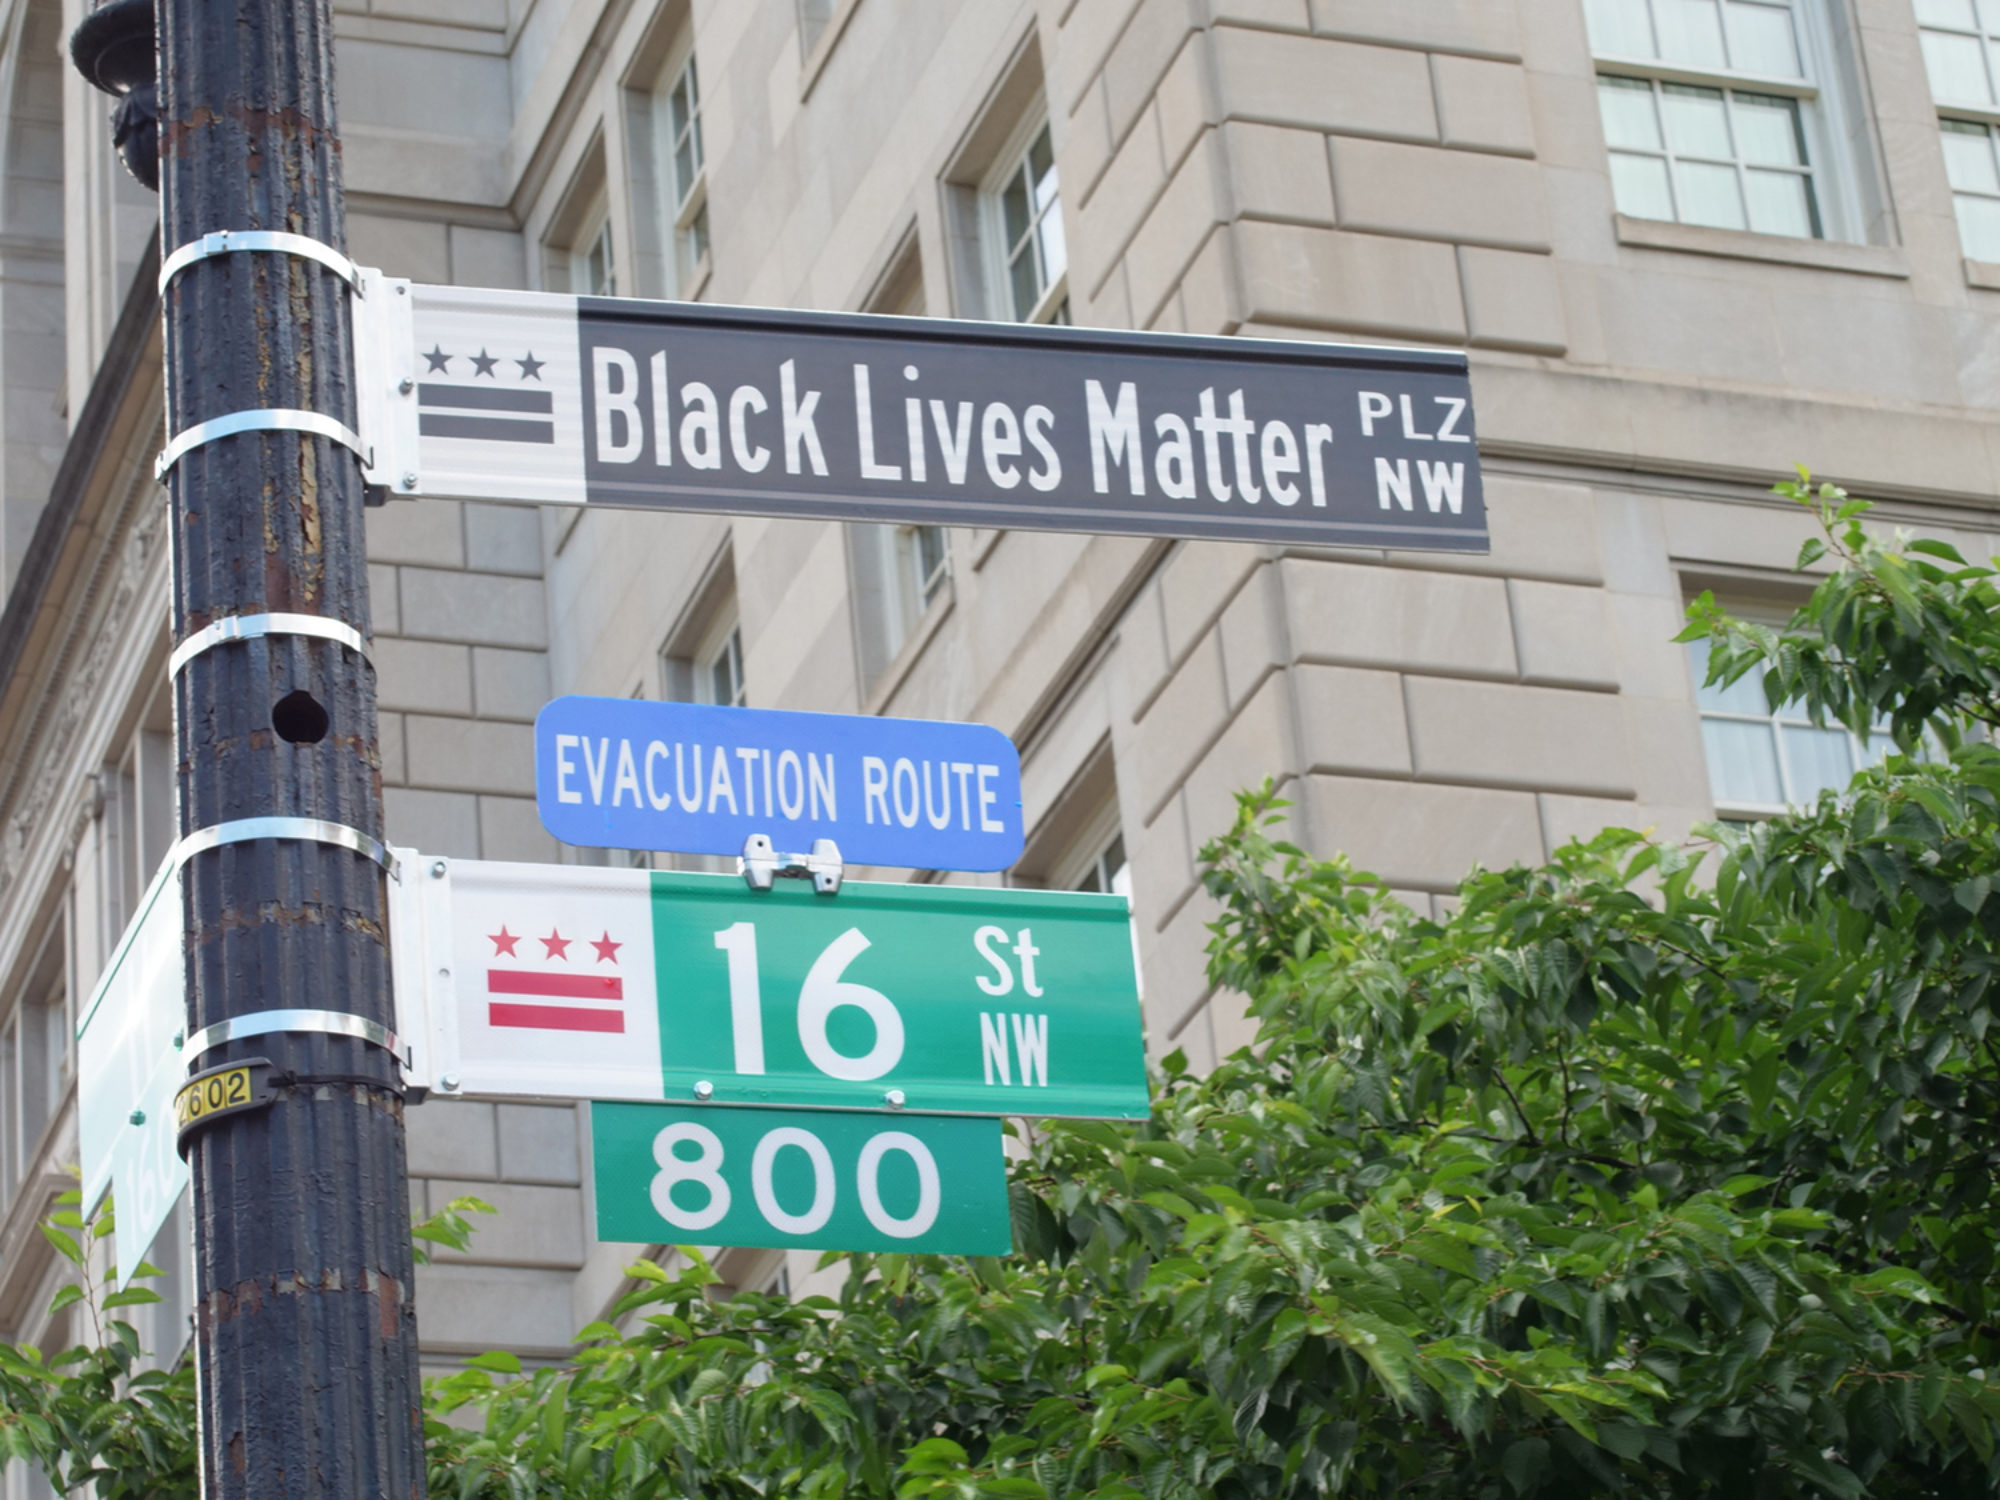 View of a building and street signs that say Black Lives Matter plaza and 16th Street